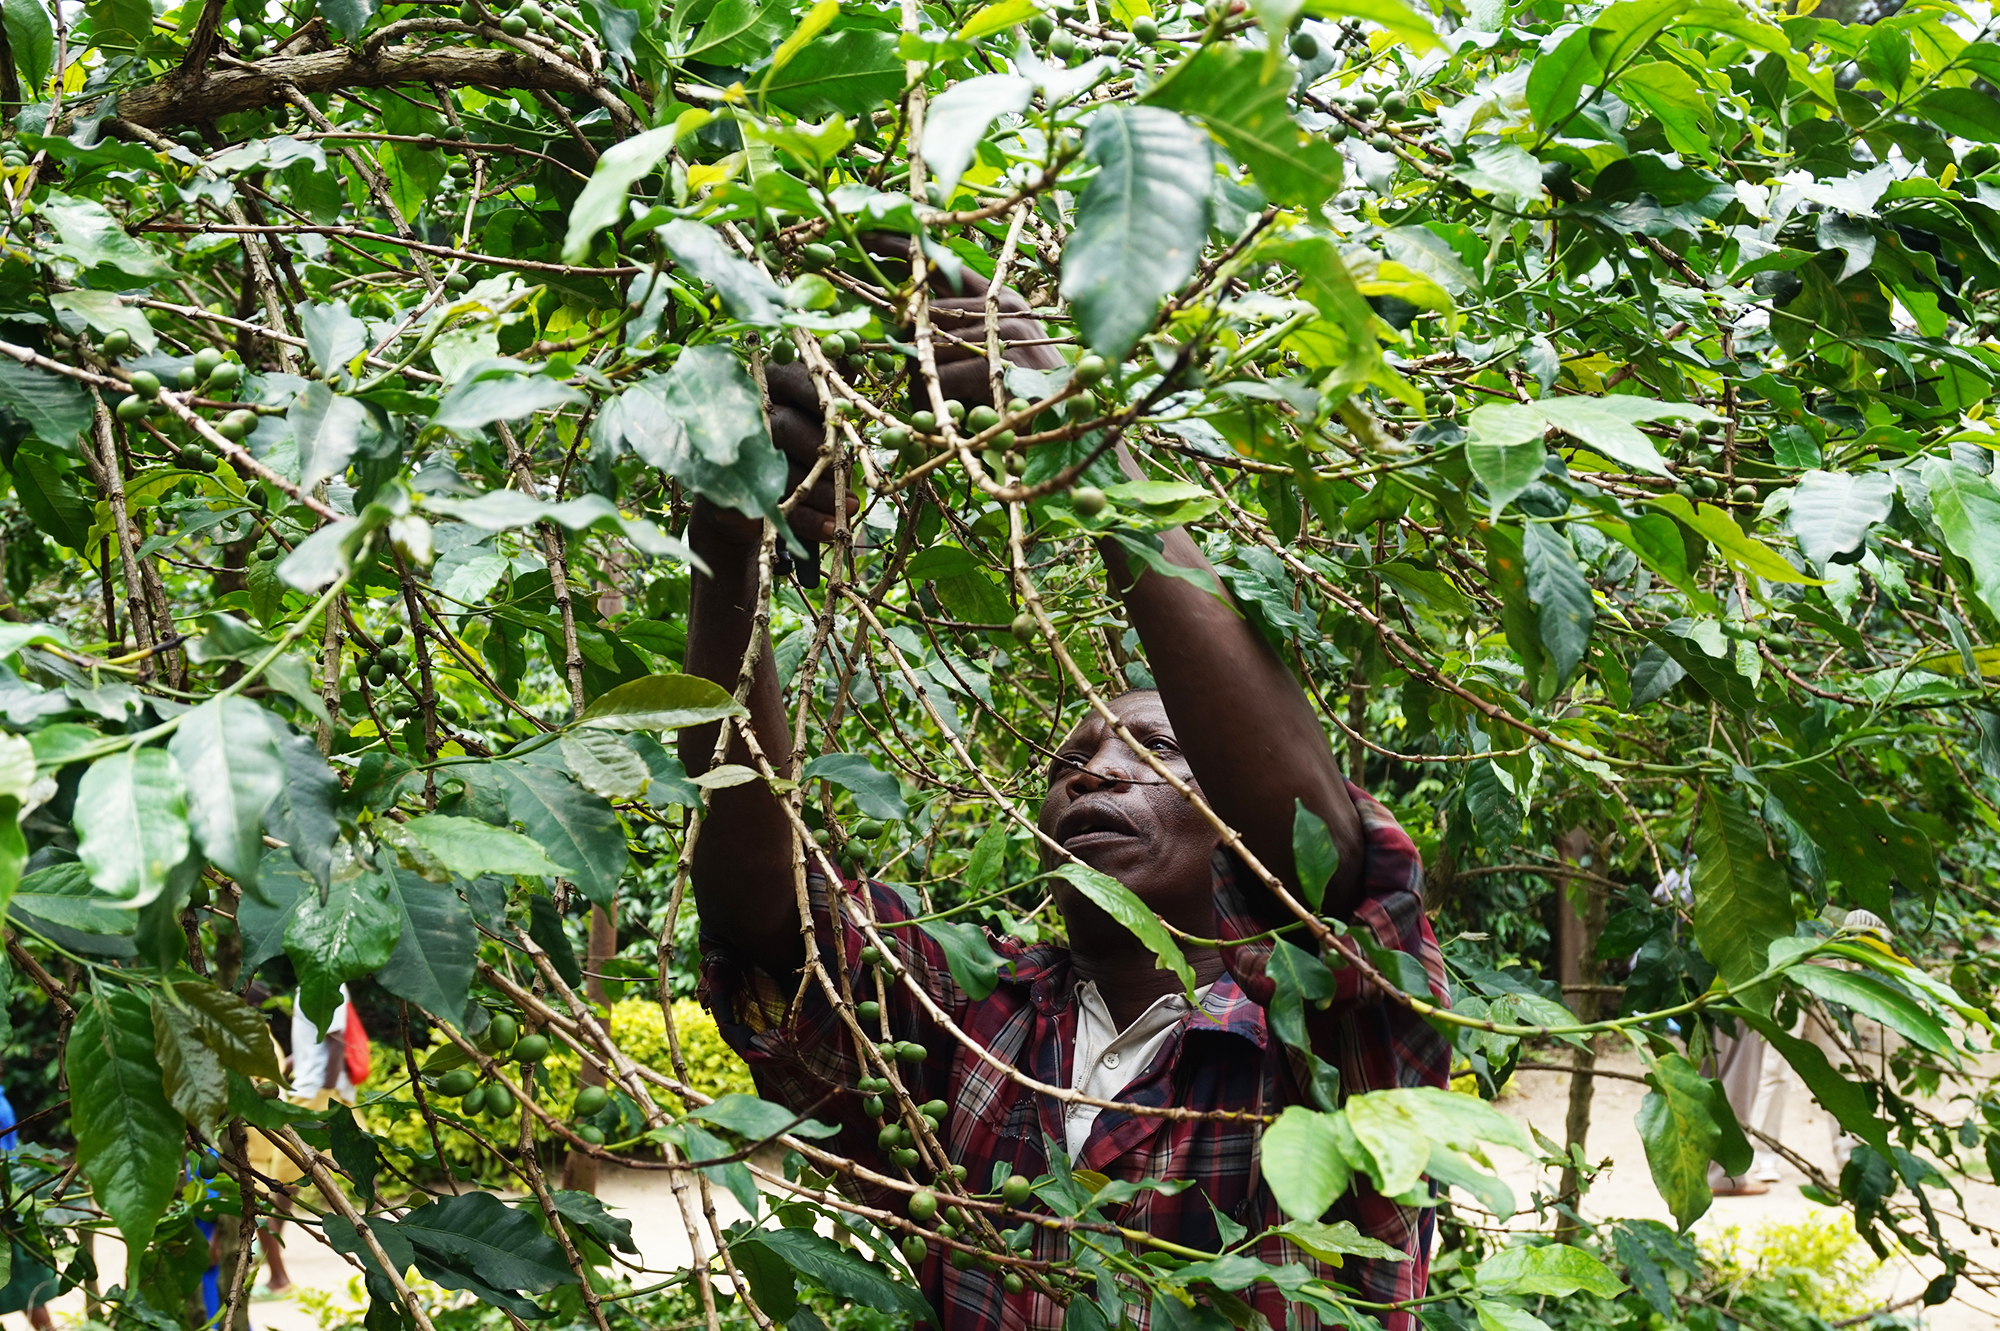 Rwanda Tries To Persuade Its Citizens To Drink The Coffee They Grow